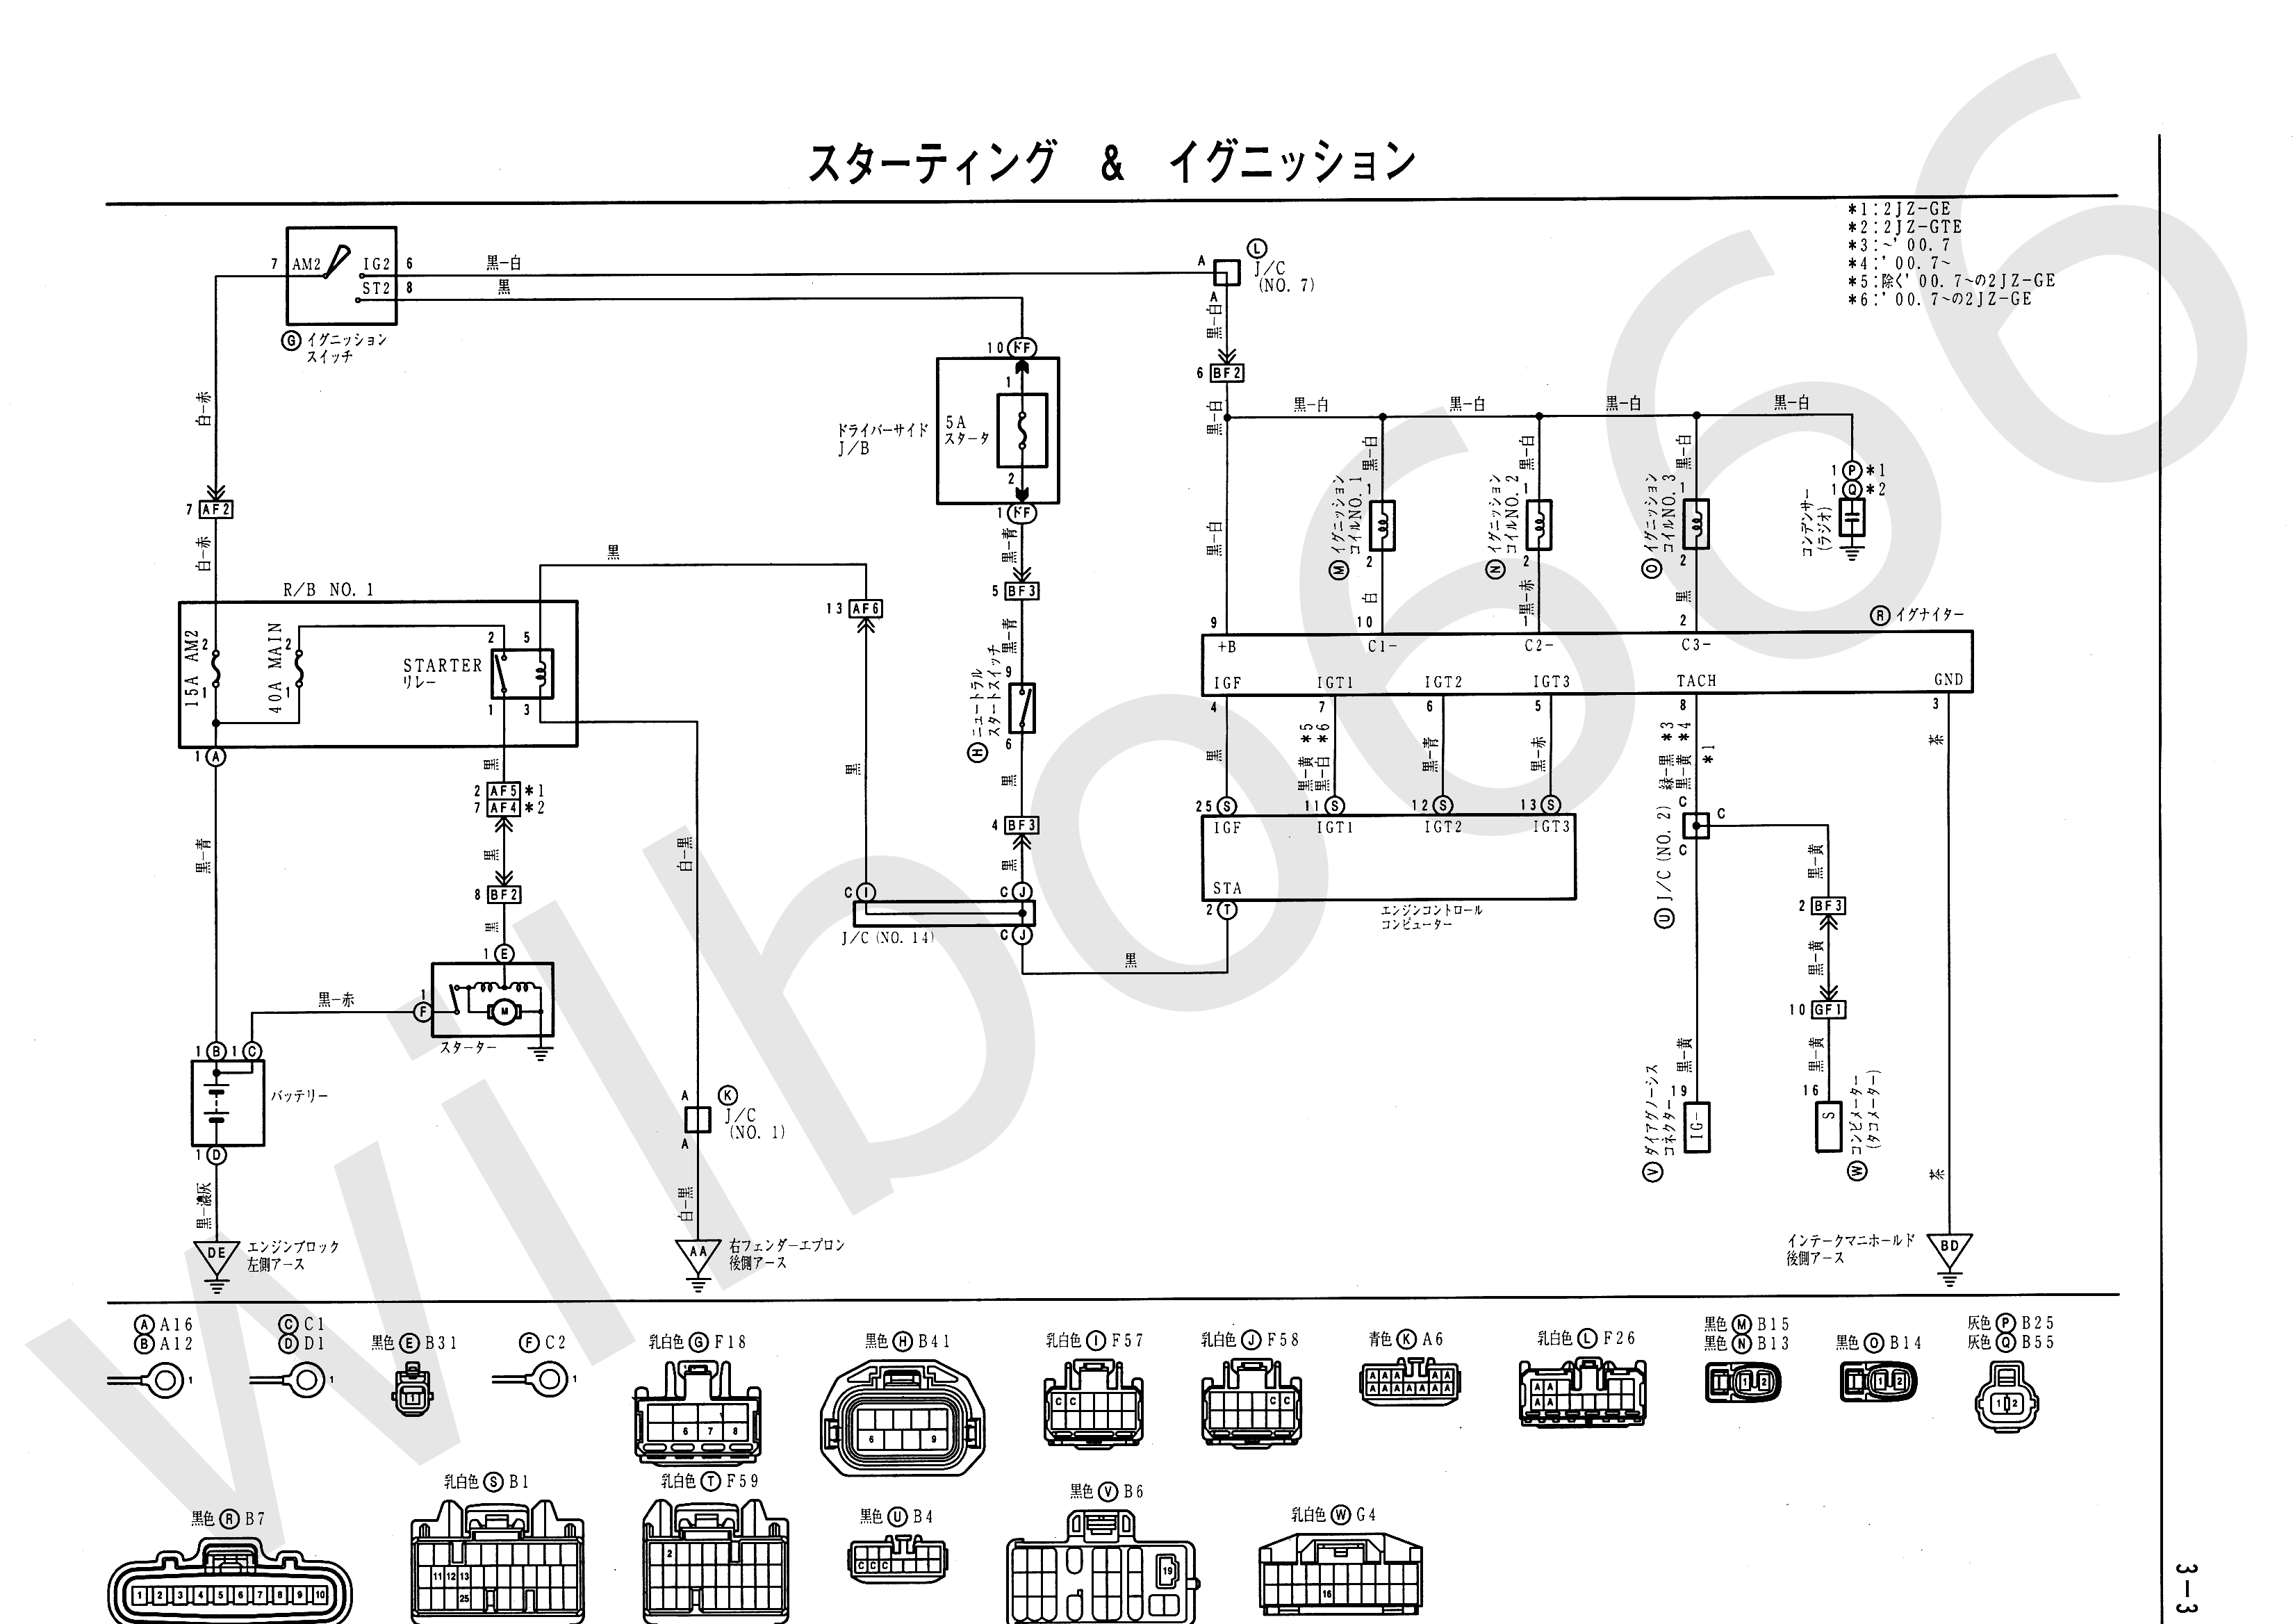 jz alternator wiring diagram jz wiring diagrams alternator wiring diagram jzs161%20electrical%20wiring%20diagram%206748505%203 3